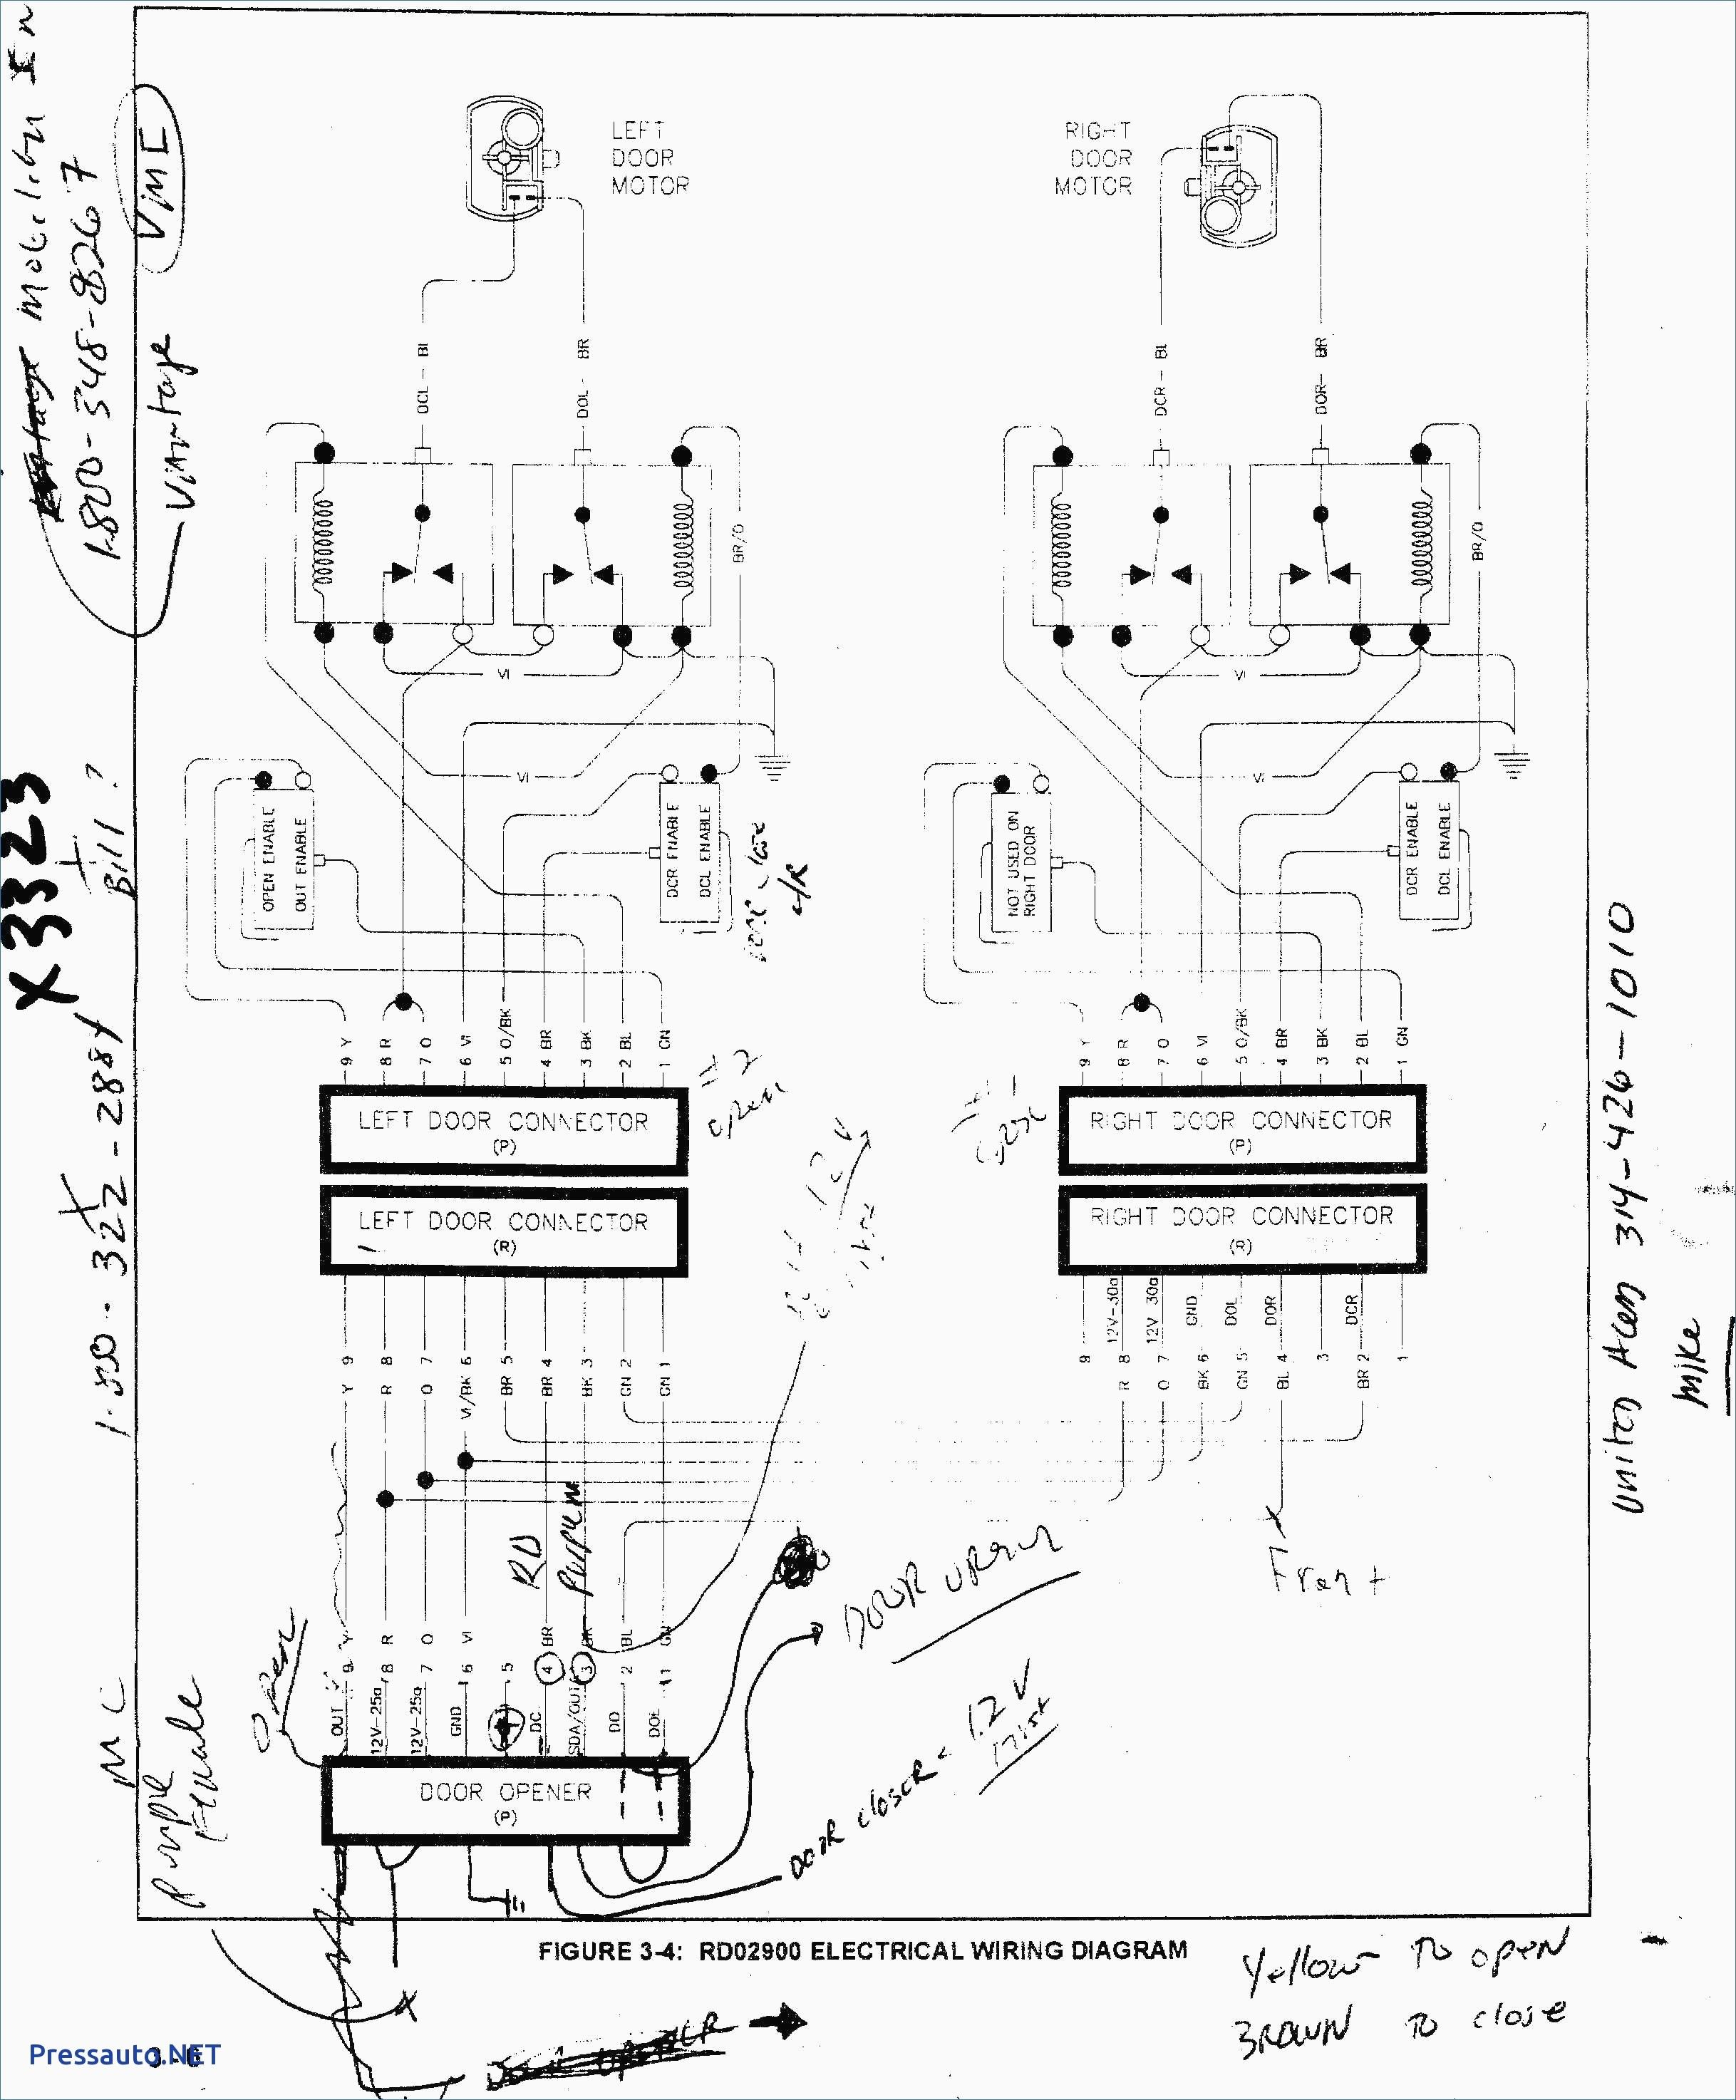 wiring diagram for precedent wiring diagram centrenew wiring diagram for 2006 club car precedent 48 volt [ 2436 x 2947 Pixel ]